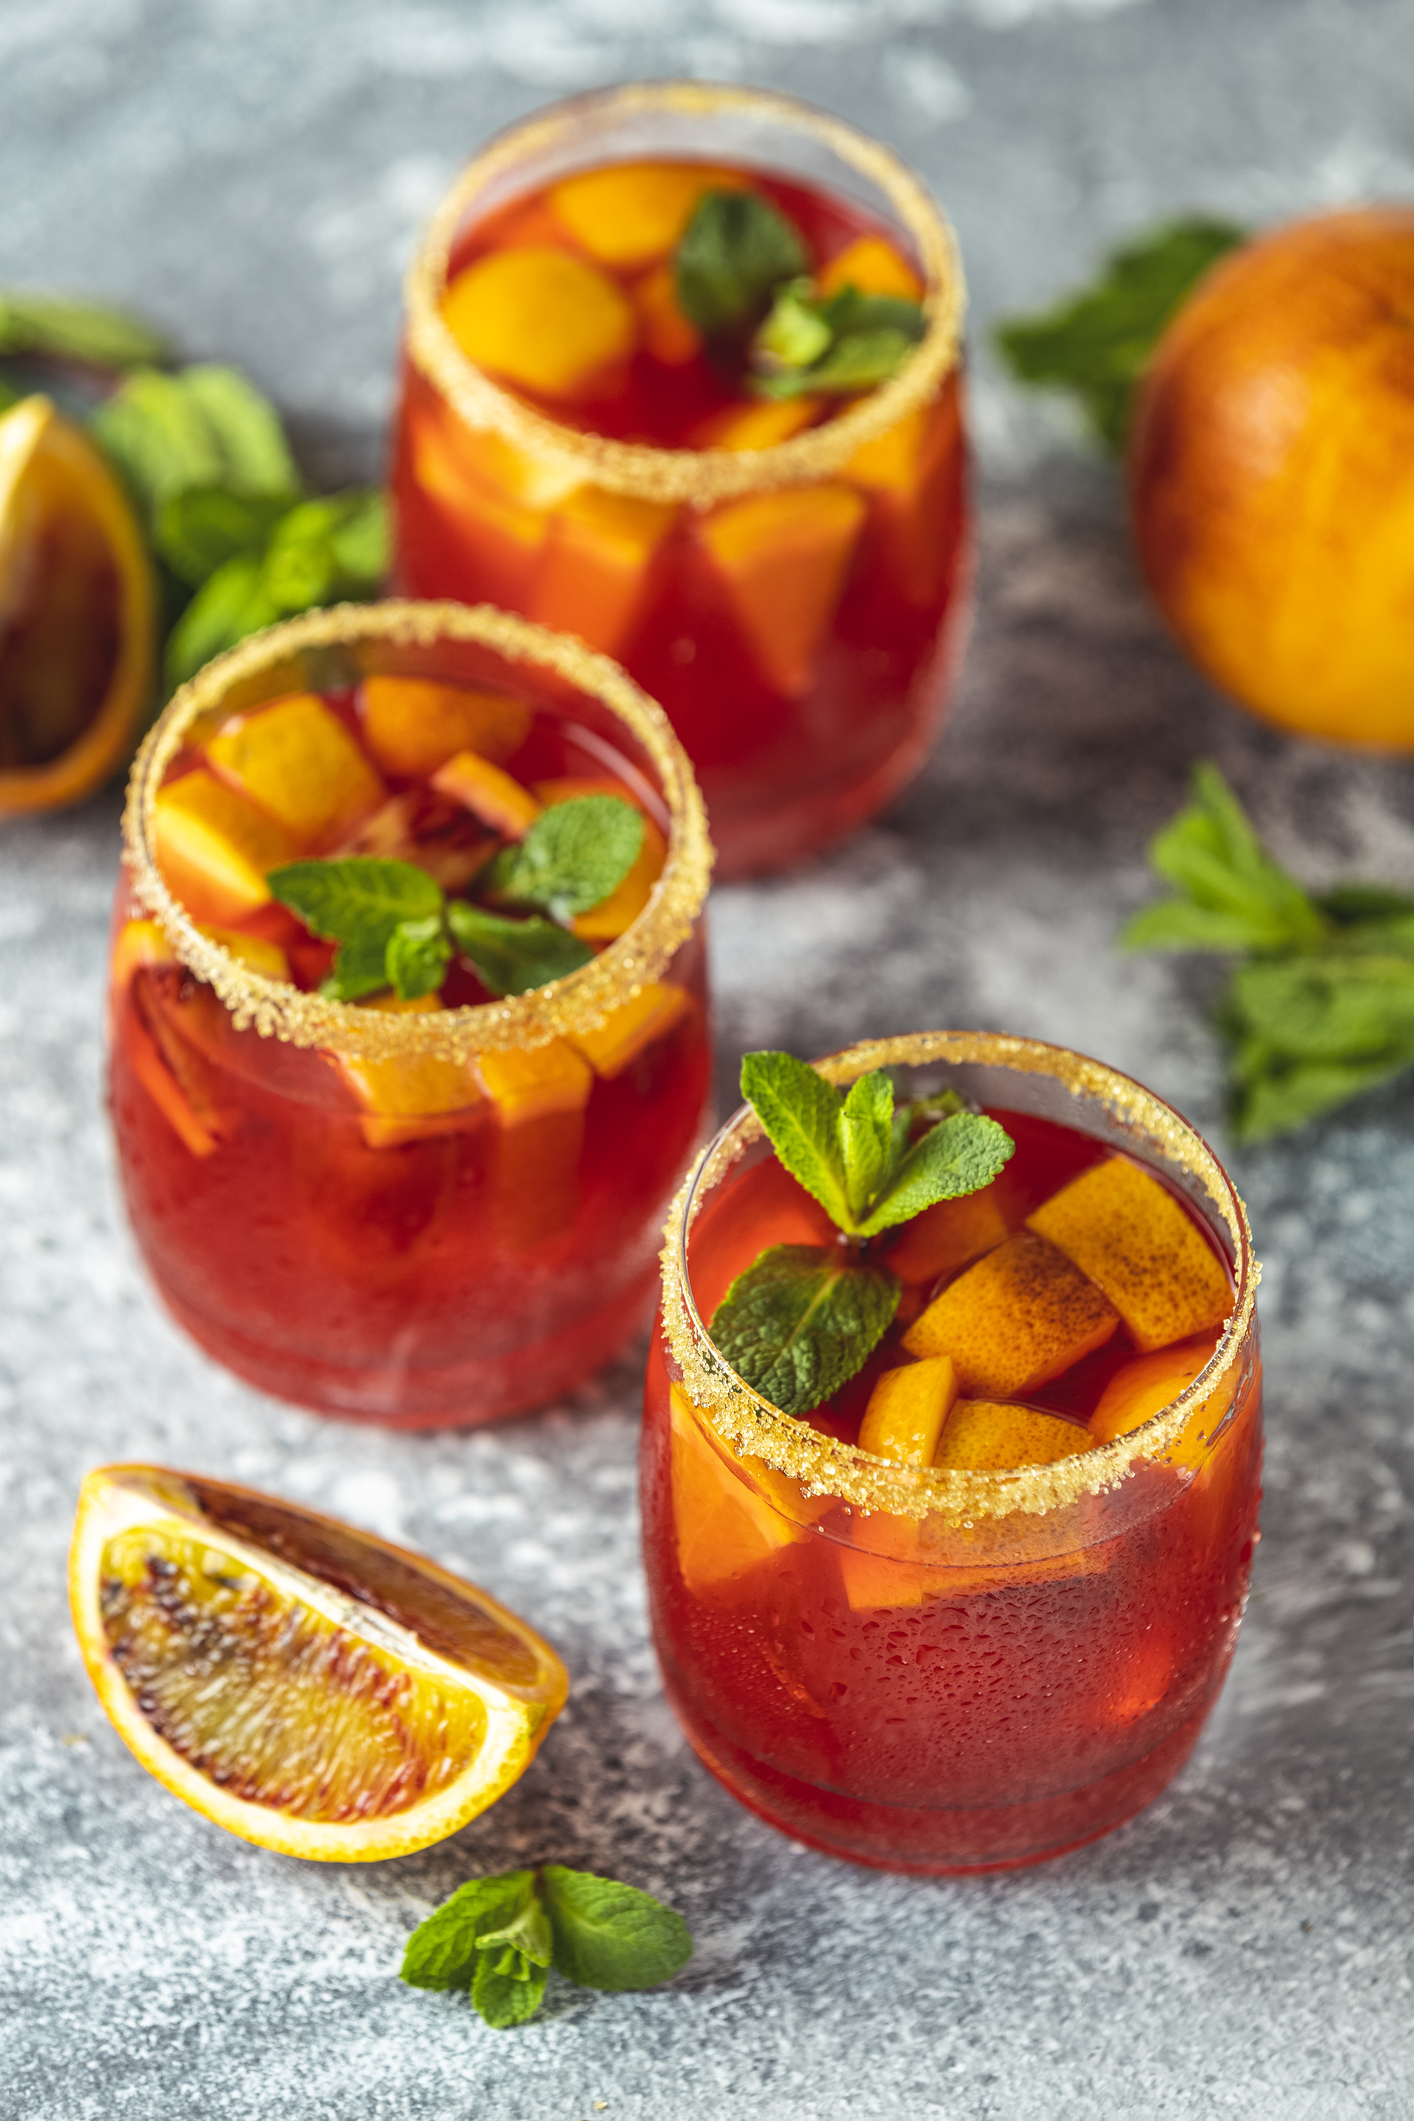 Getty Images - Pimms